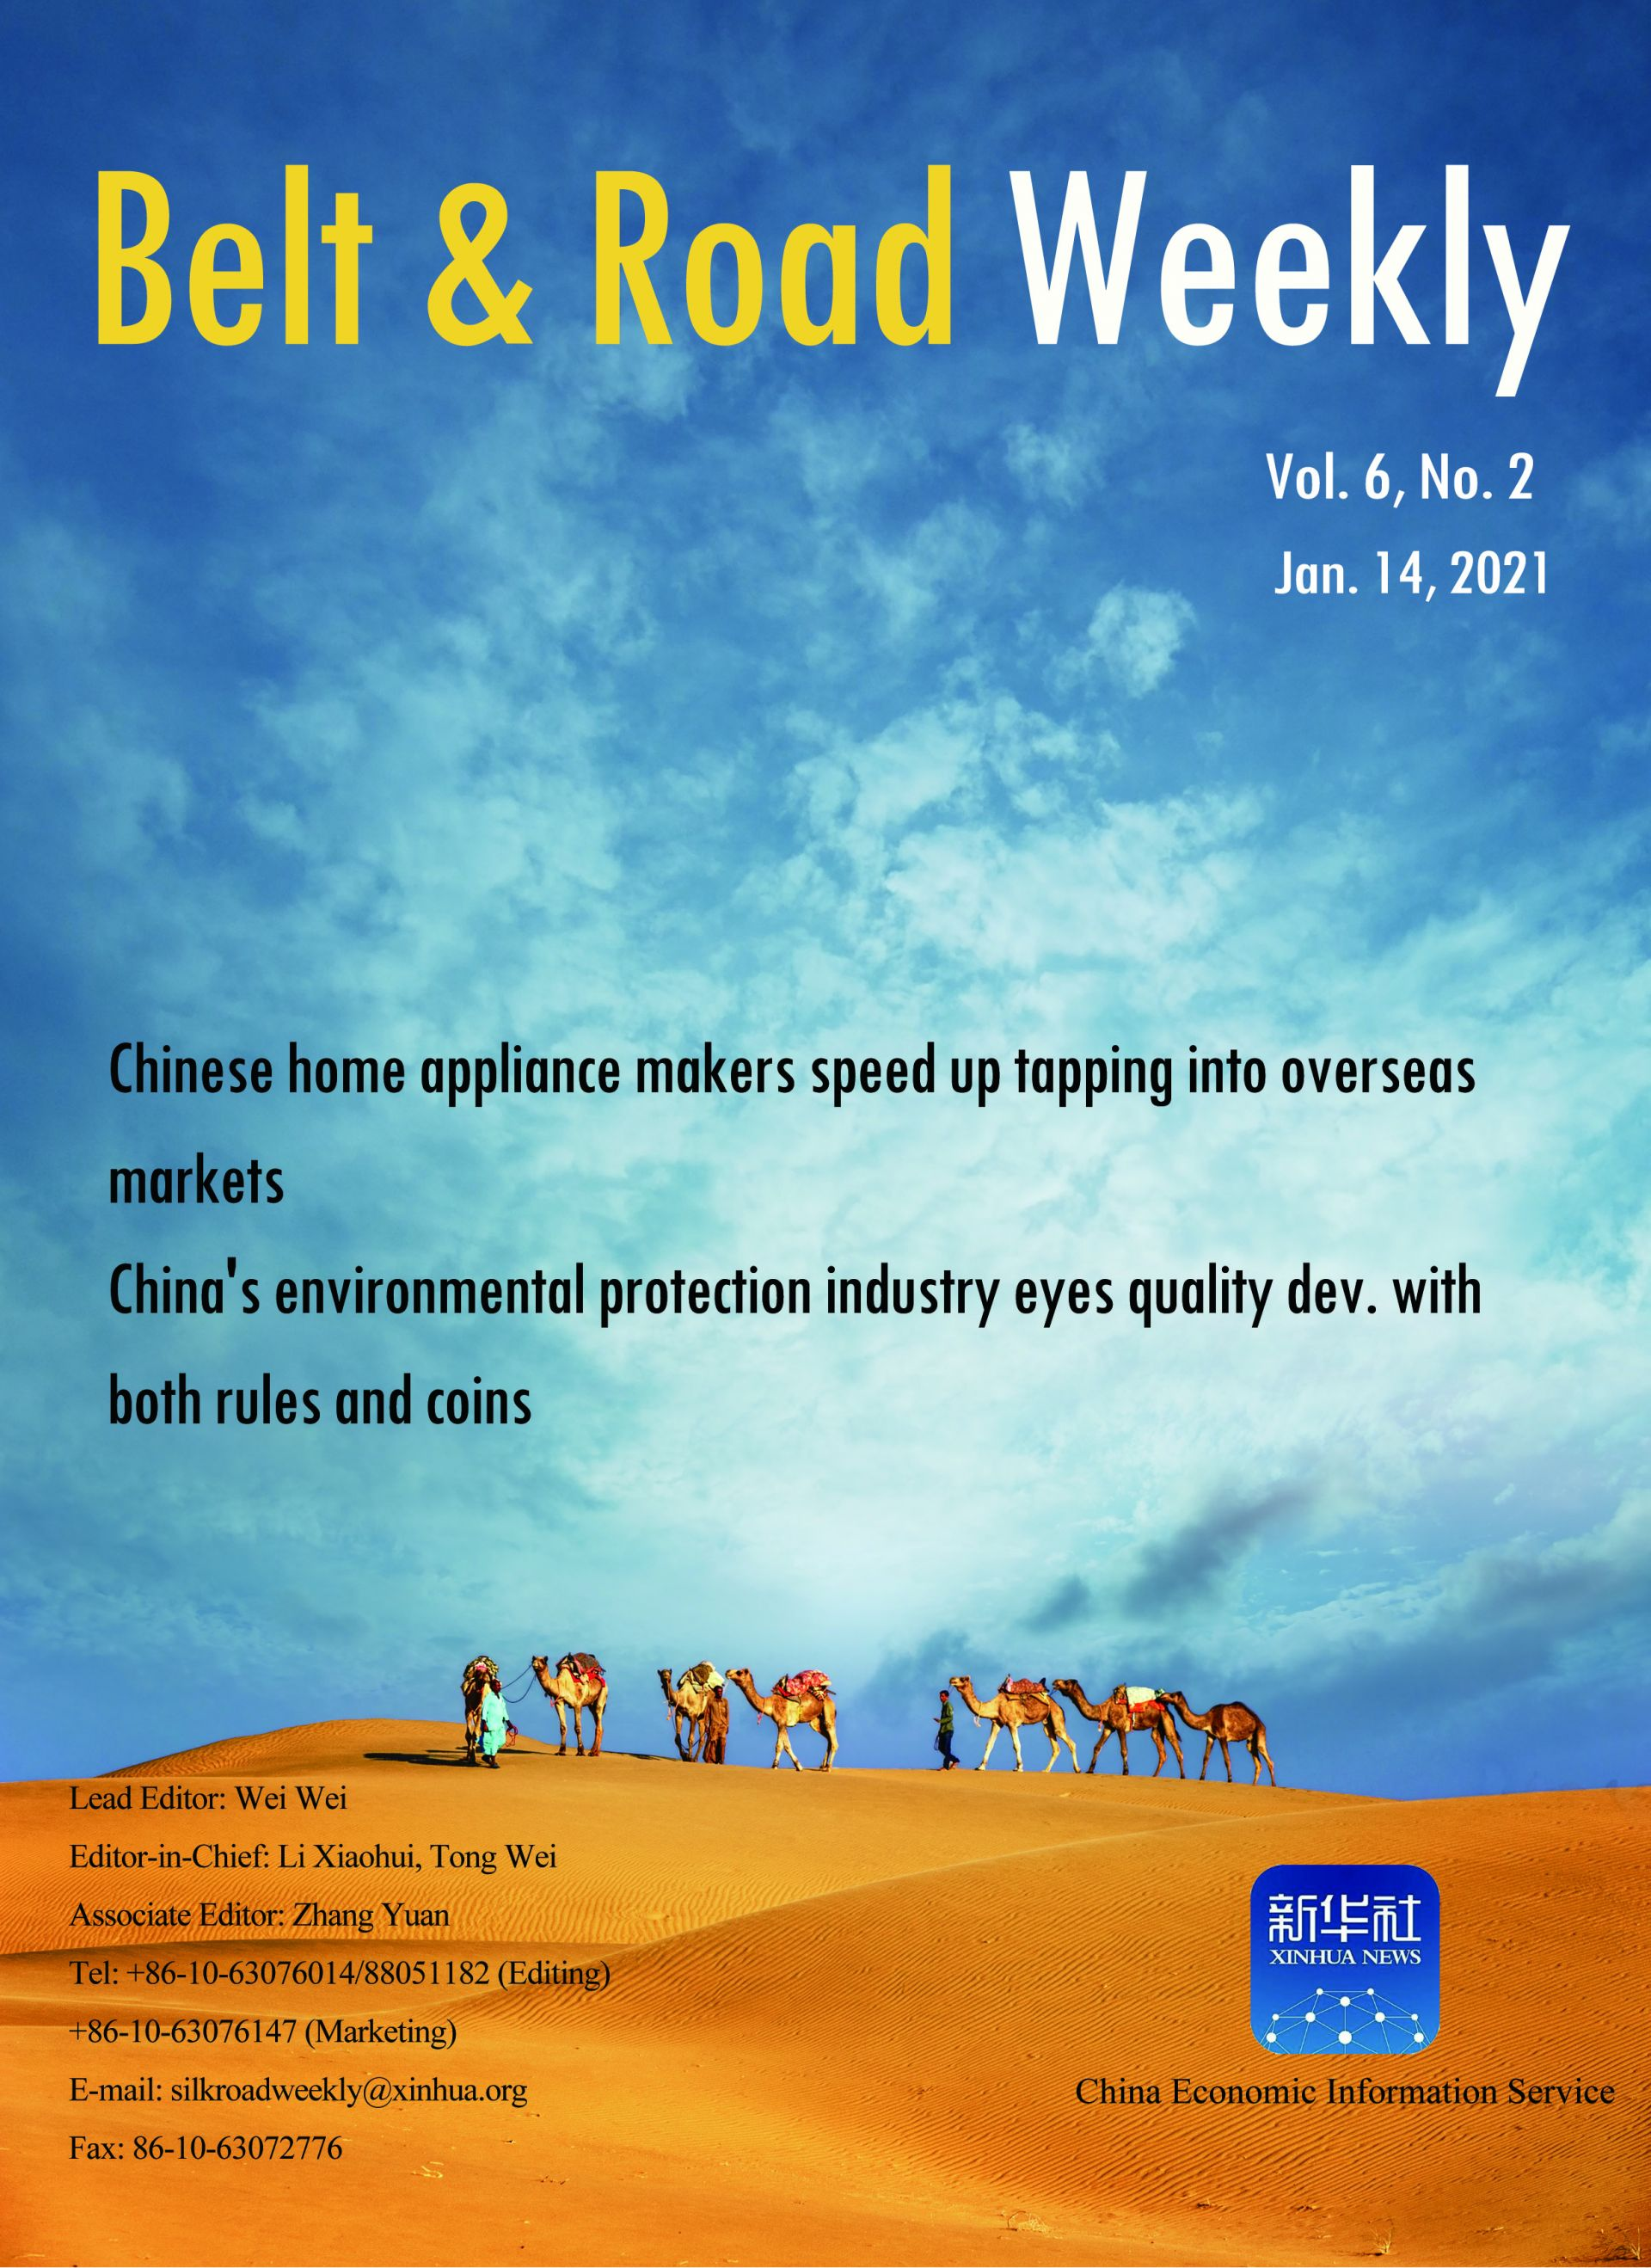 Belt & Road Weekly Vol. 6 No. 2